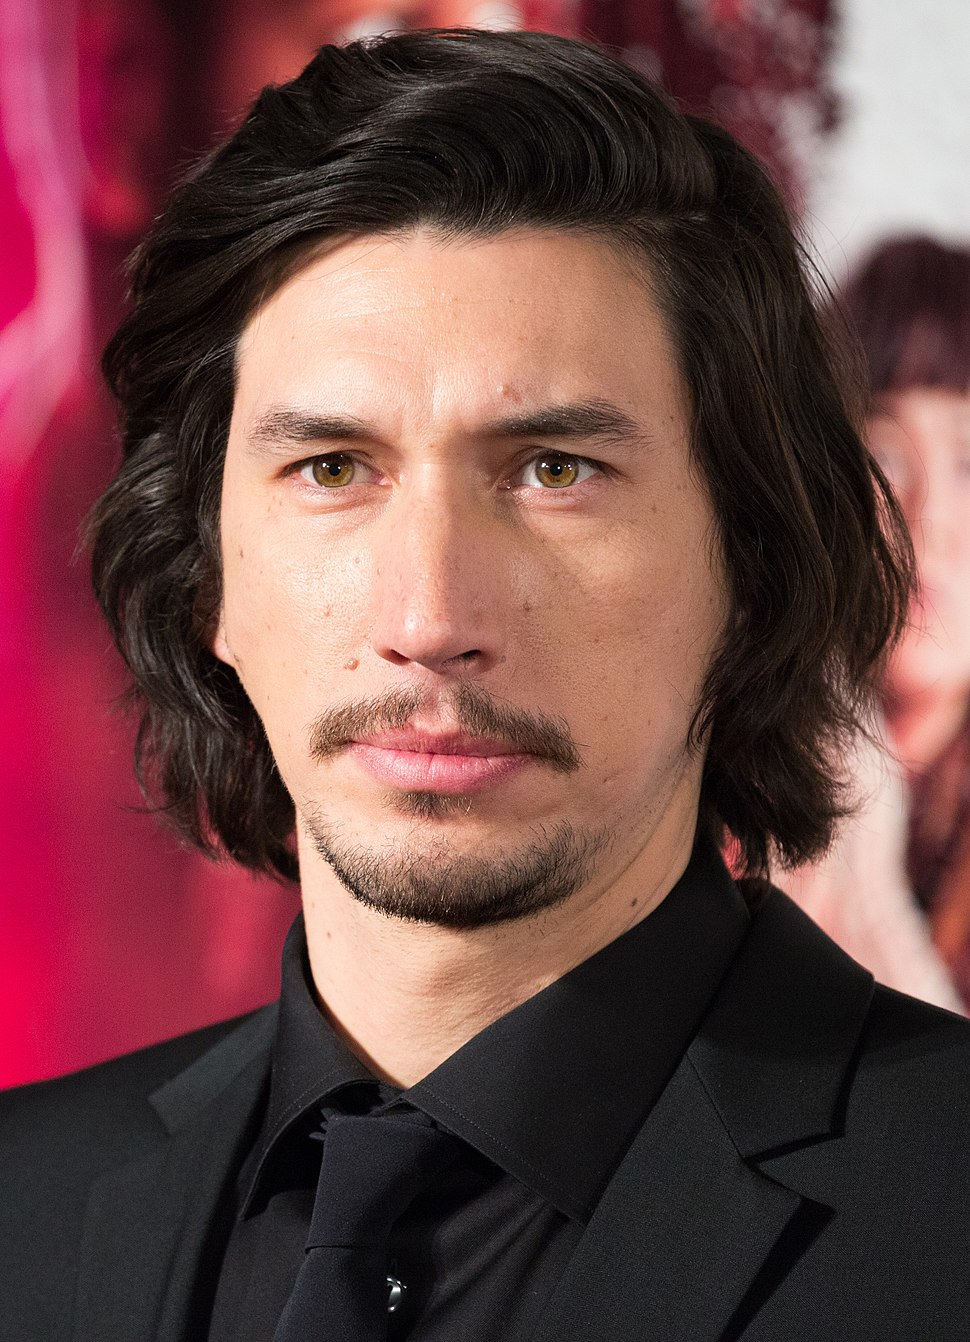 Star Wars- The Last Jedi Japan Premiere Red Carpet- Adam Driver (27163437599) (cropped)